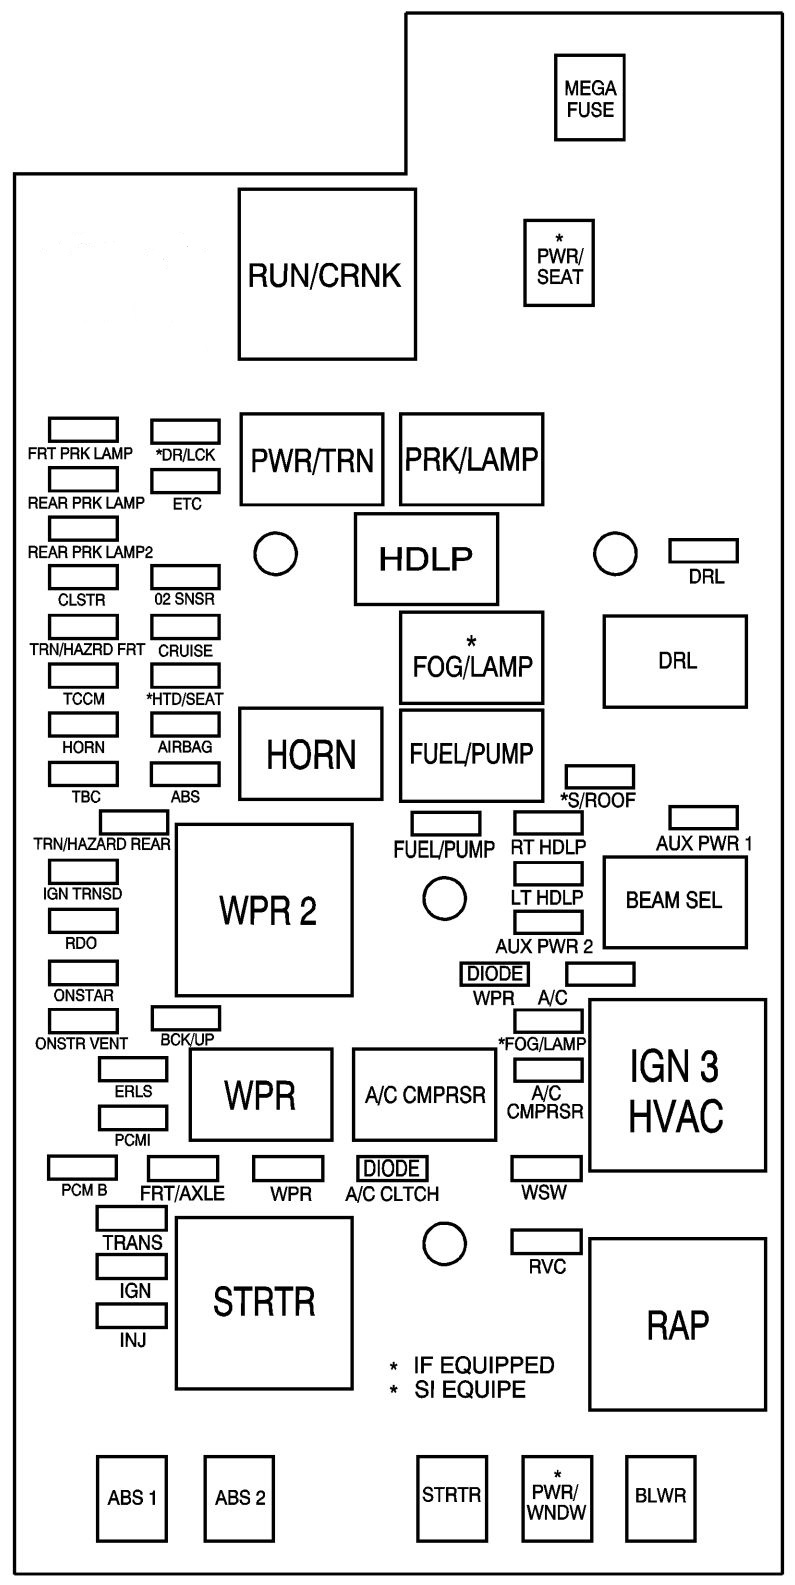 medium resolution of fuse box under hood of 06 chevy hhr wiring diagram write2006 hhr fuse box diagram wiring